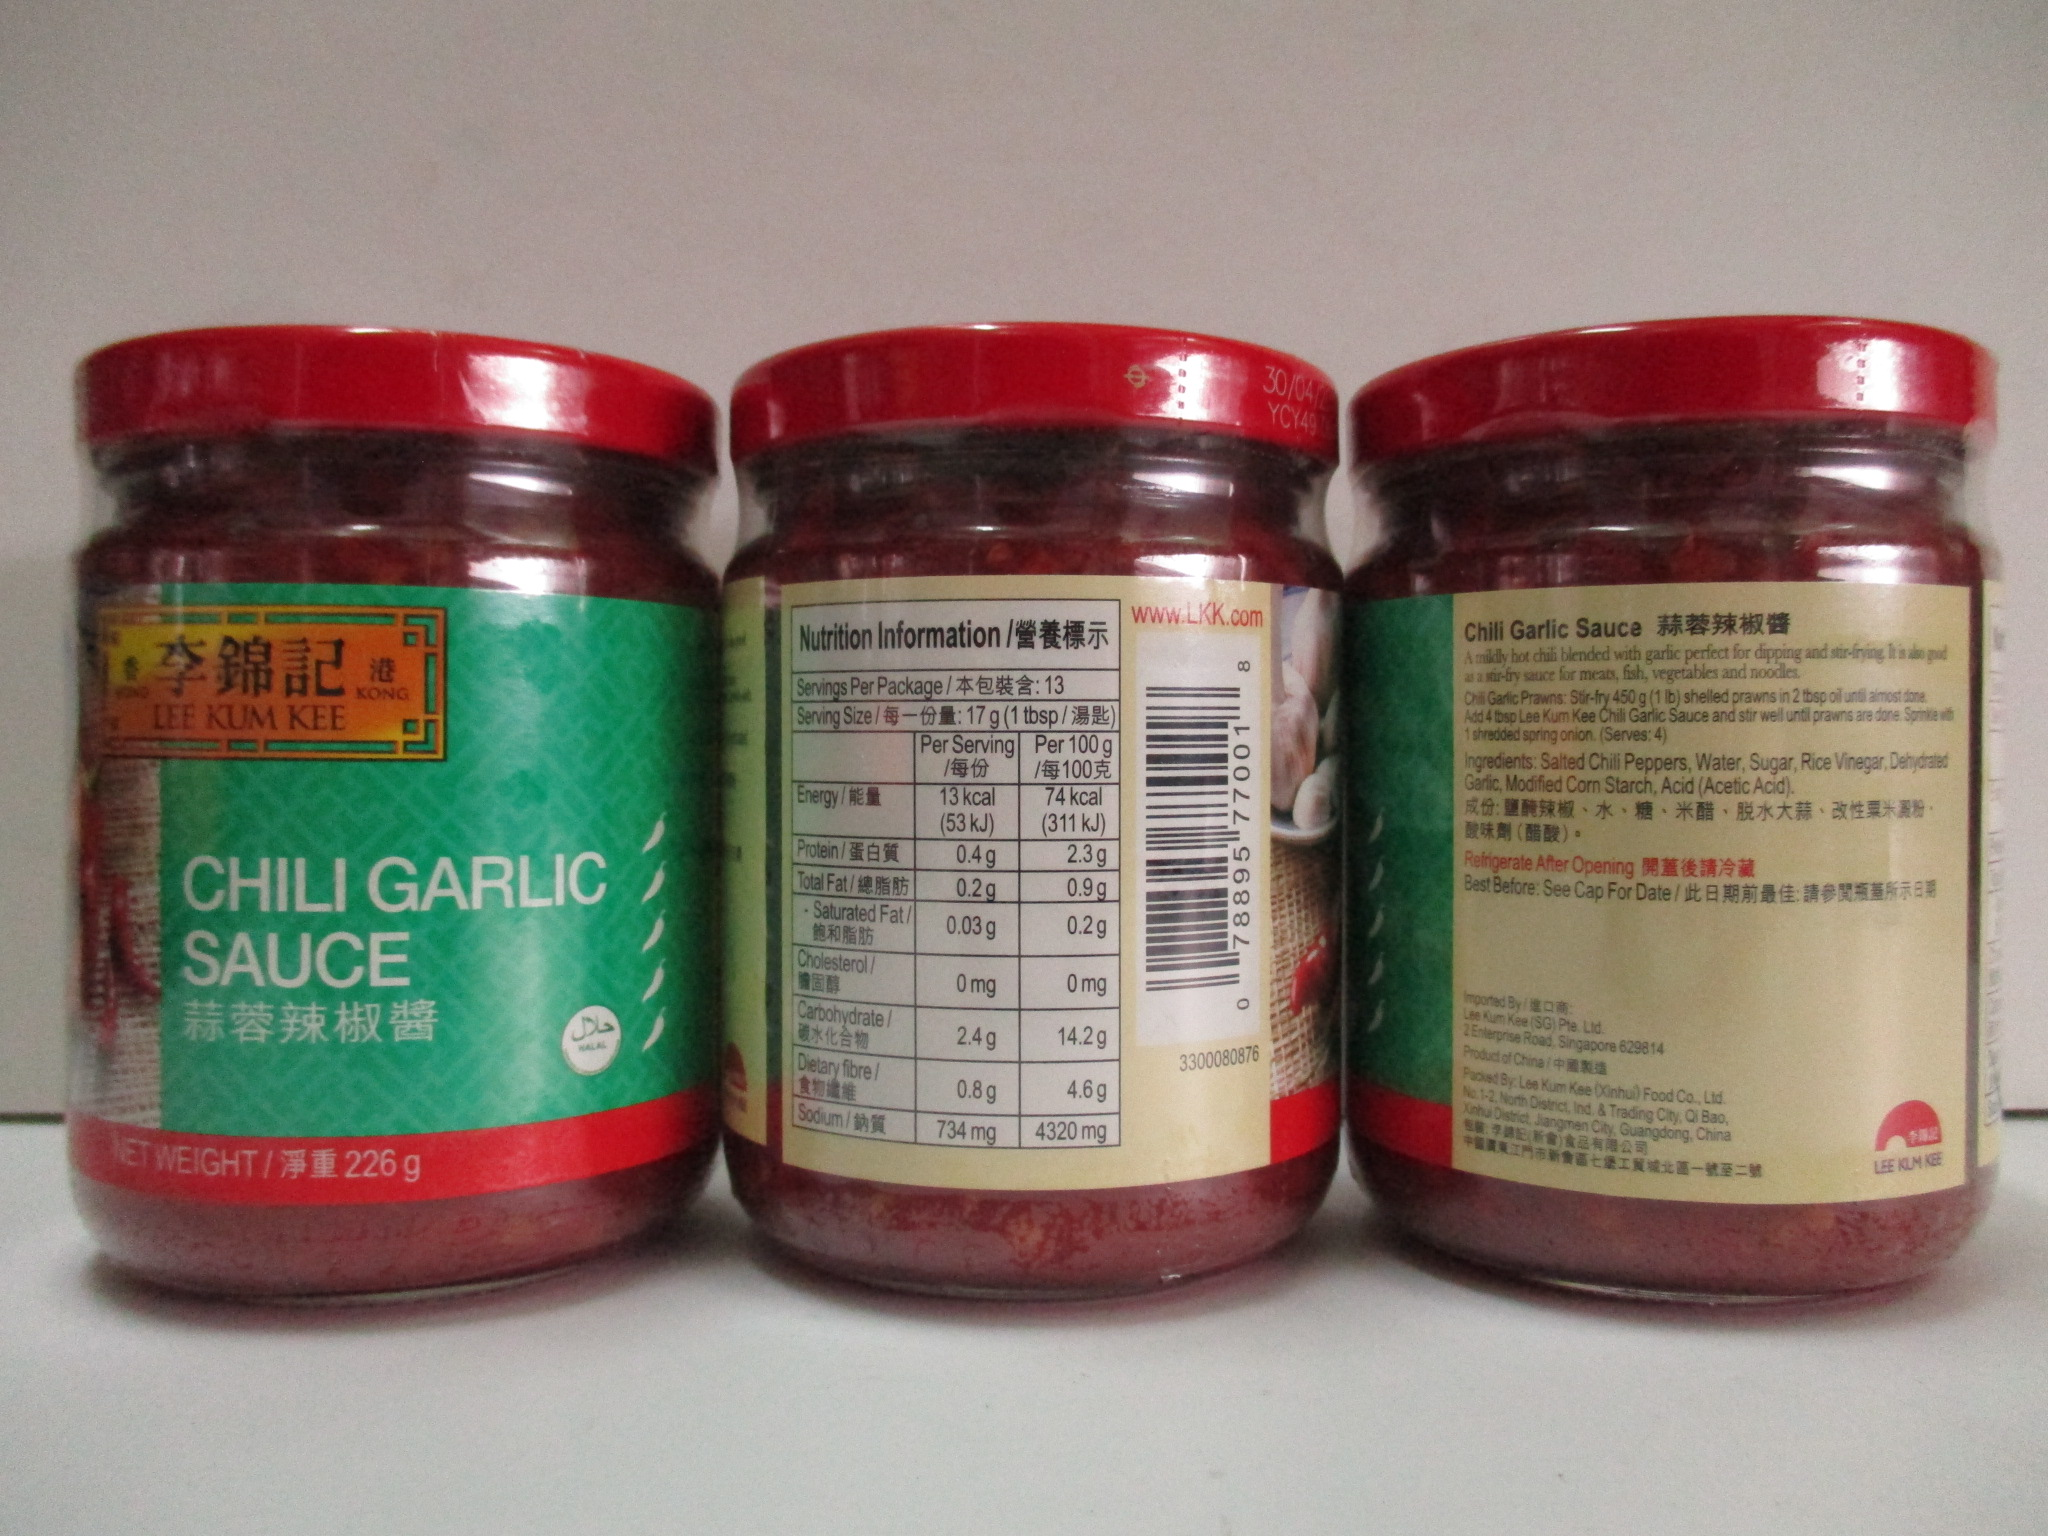 LKK Chili Garlic Sauce (12 x 226g)